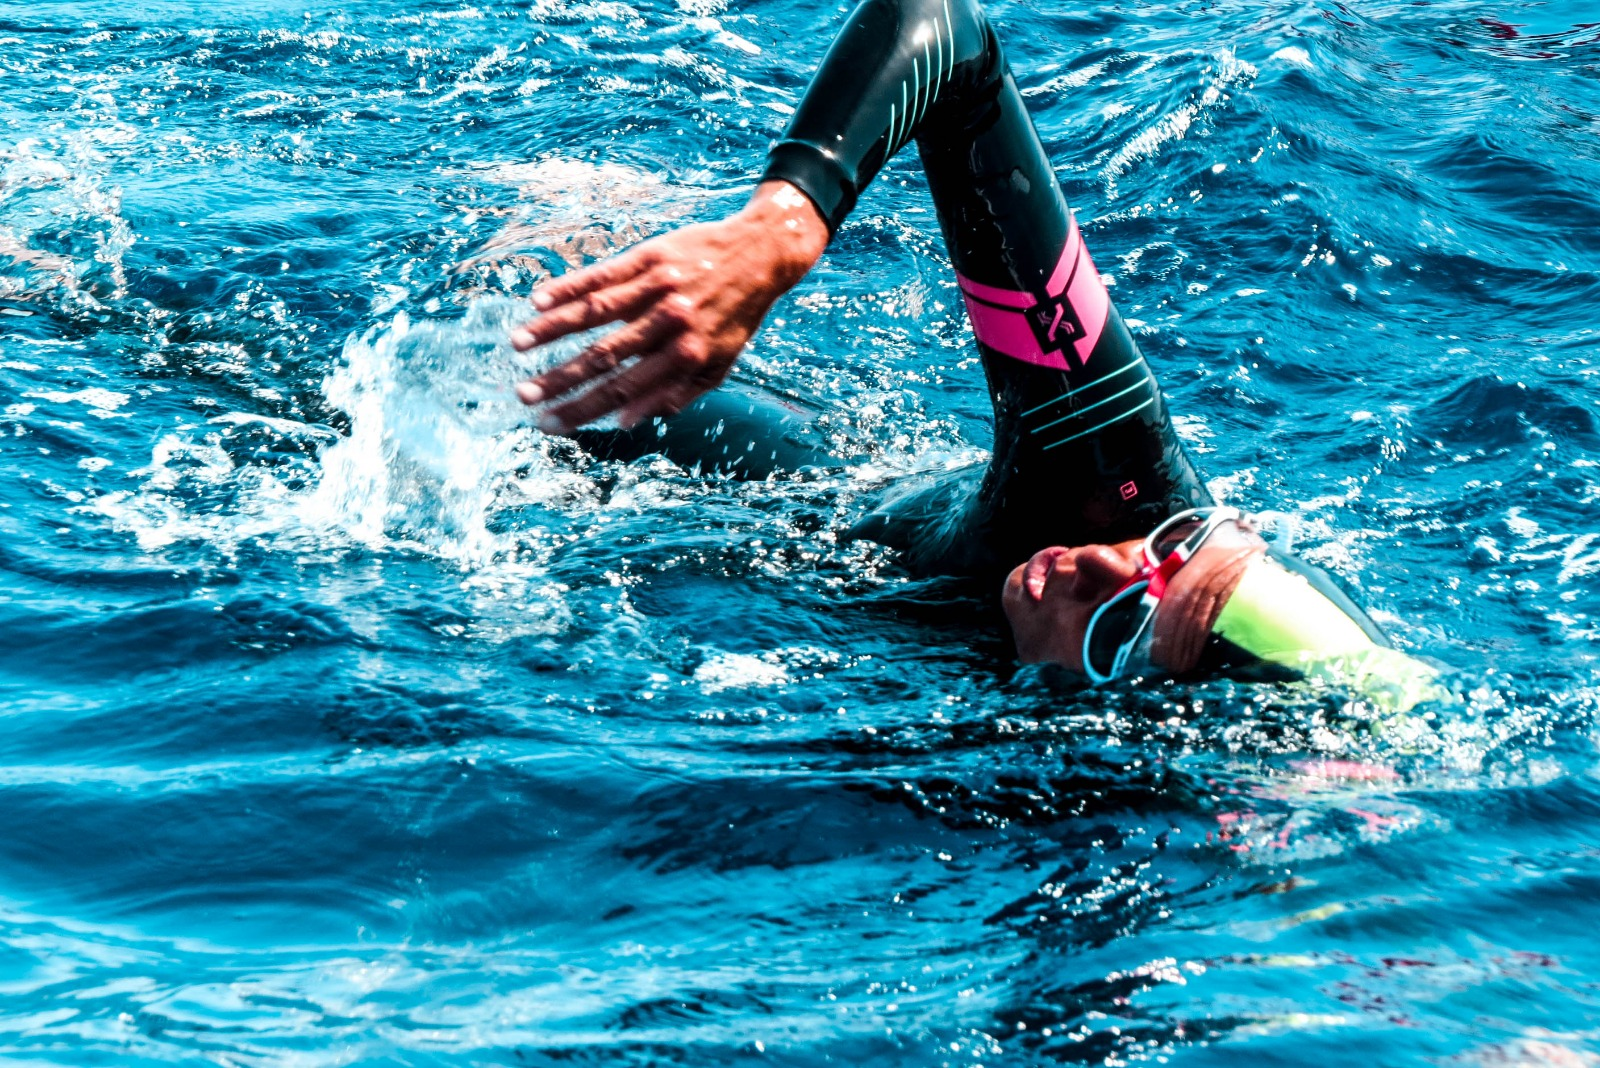 Photos from the challenge - Viški channel swimming